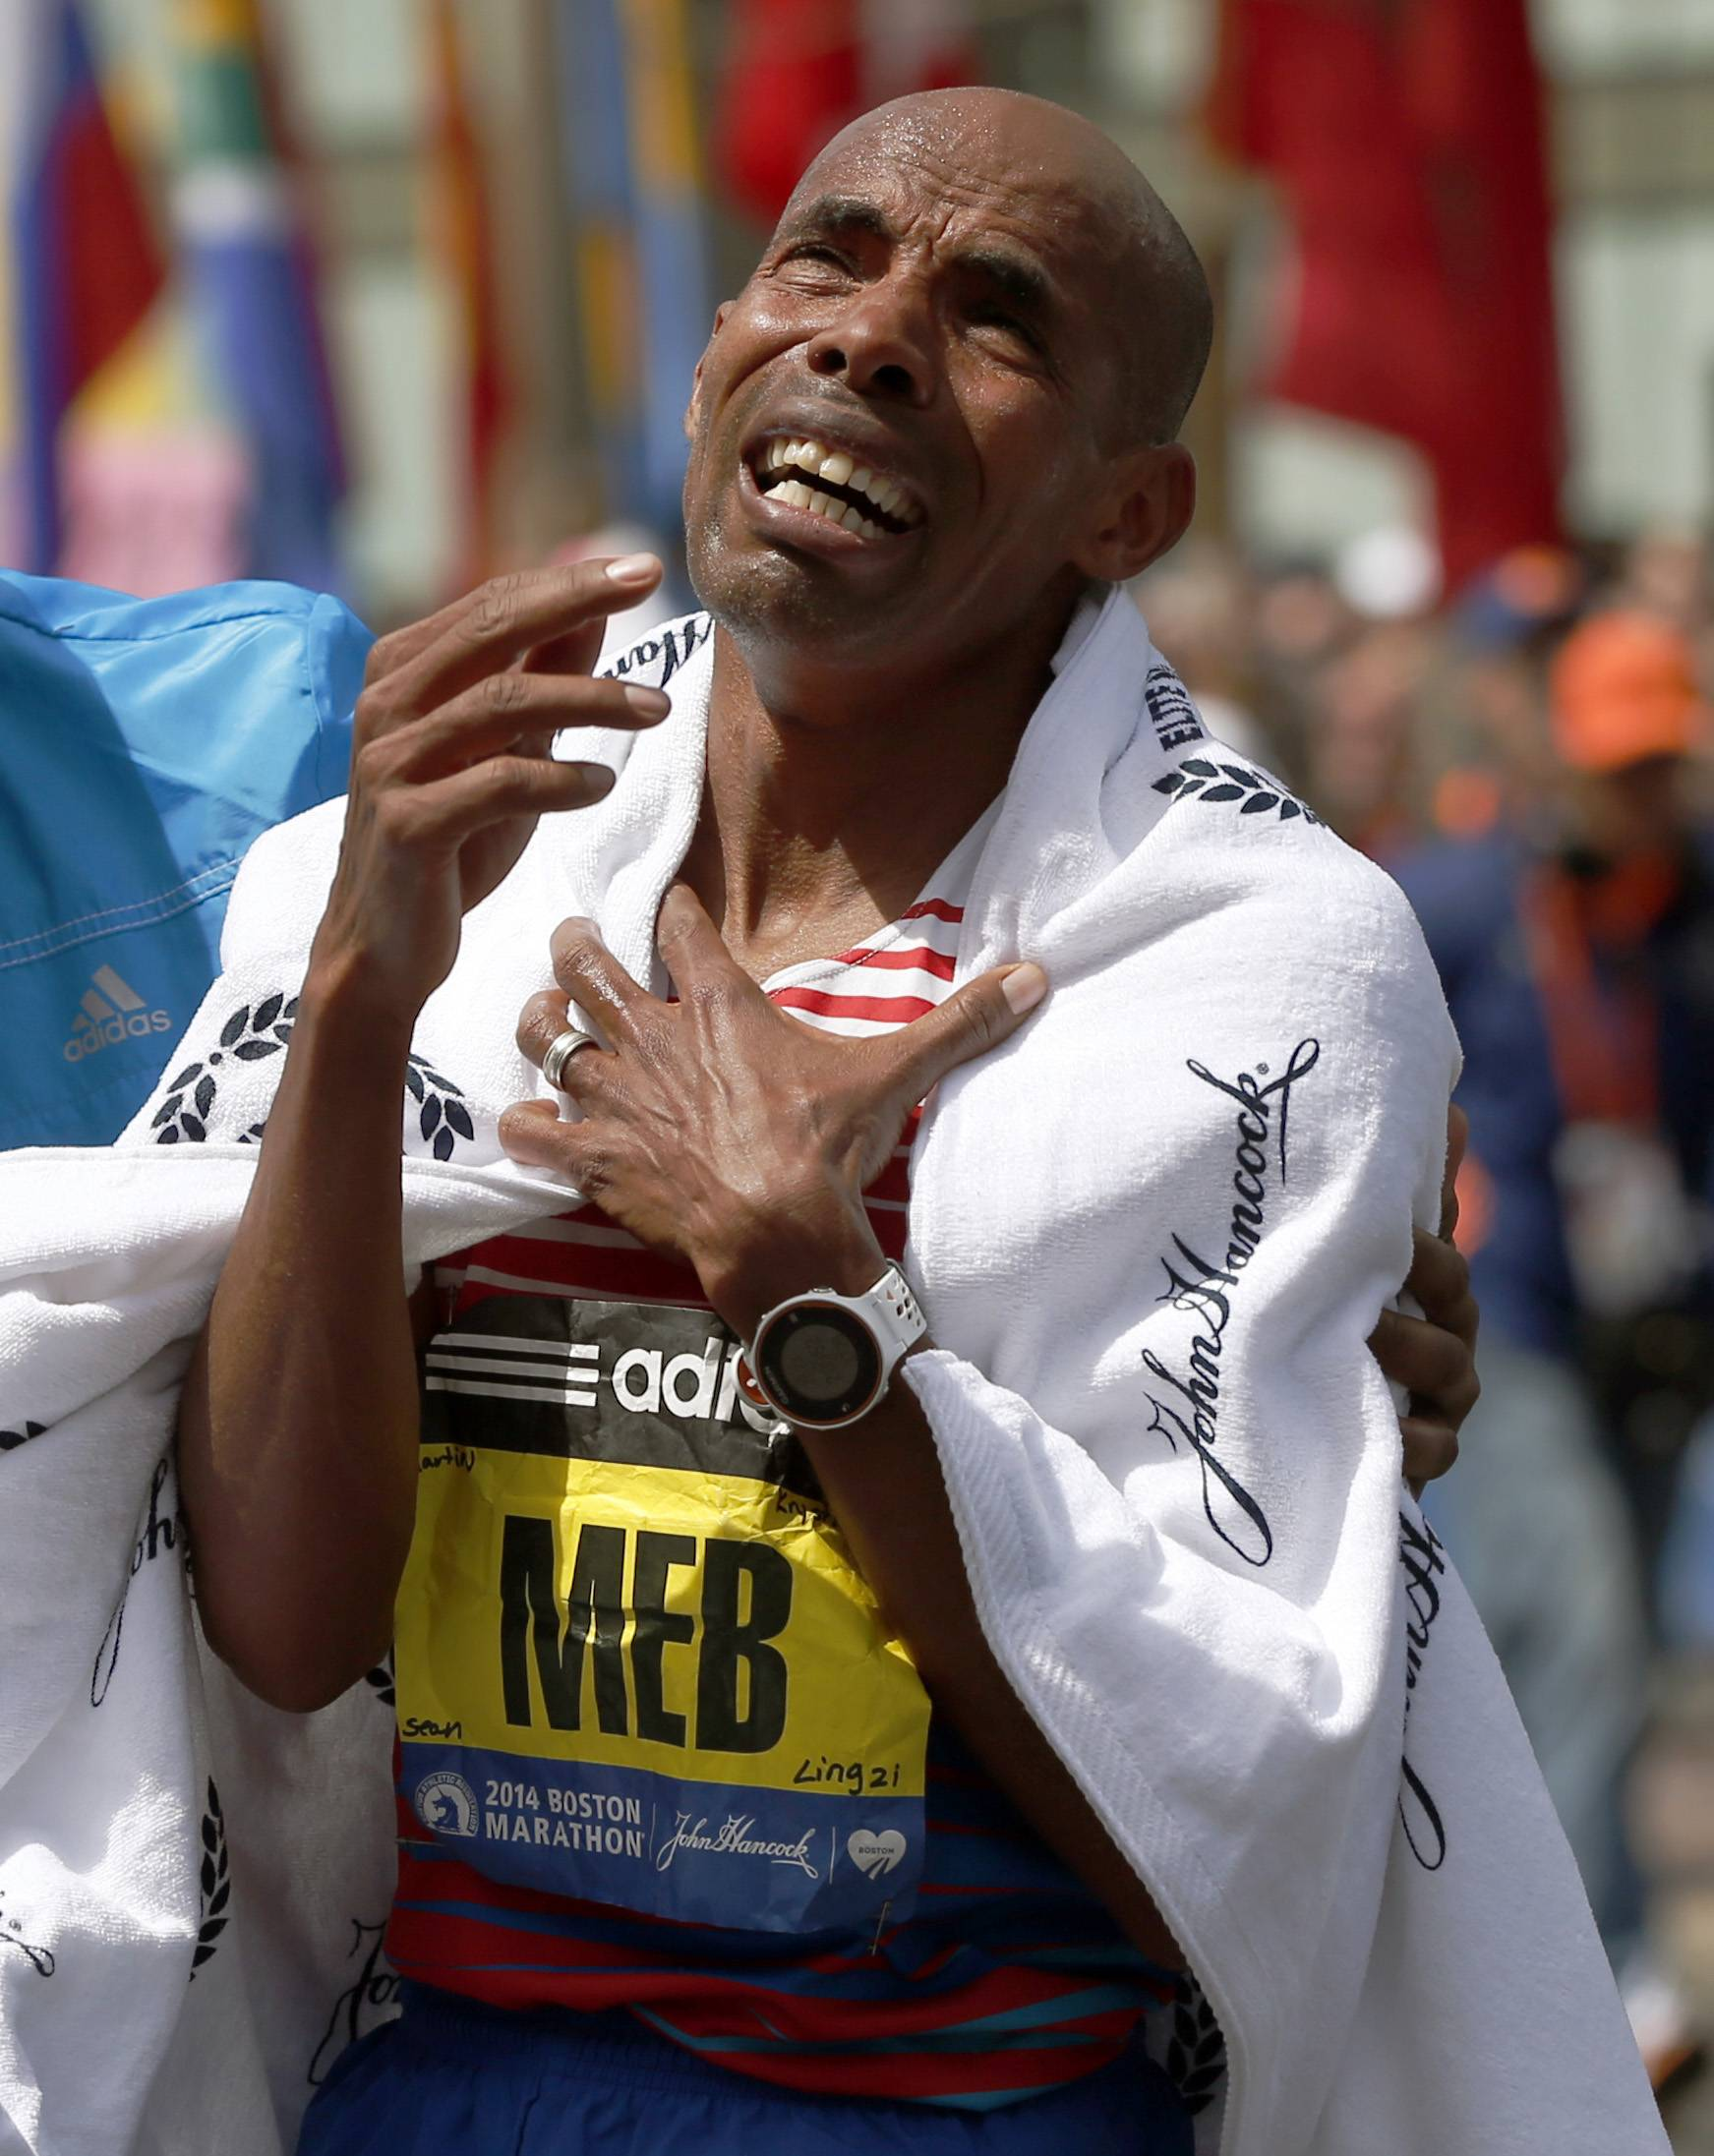 Meb Keflezighi, of San Diego, Calif., becomes emotional after winning the 118th Boston Marathon.